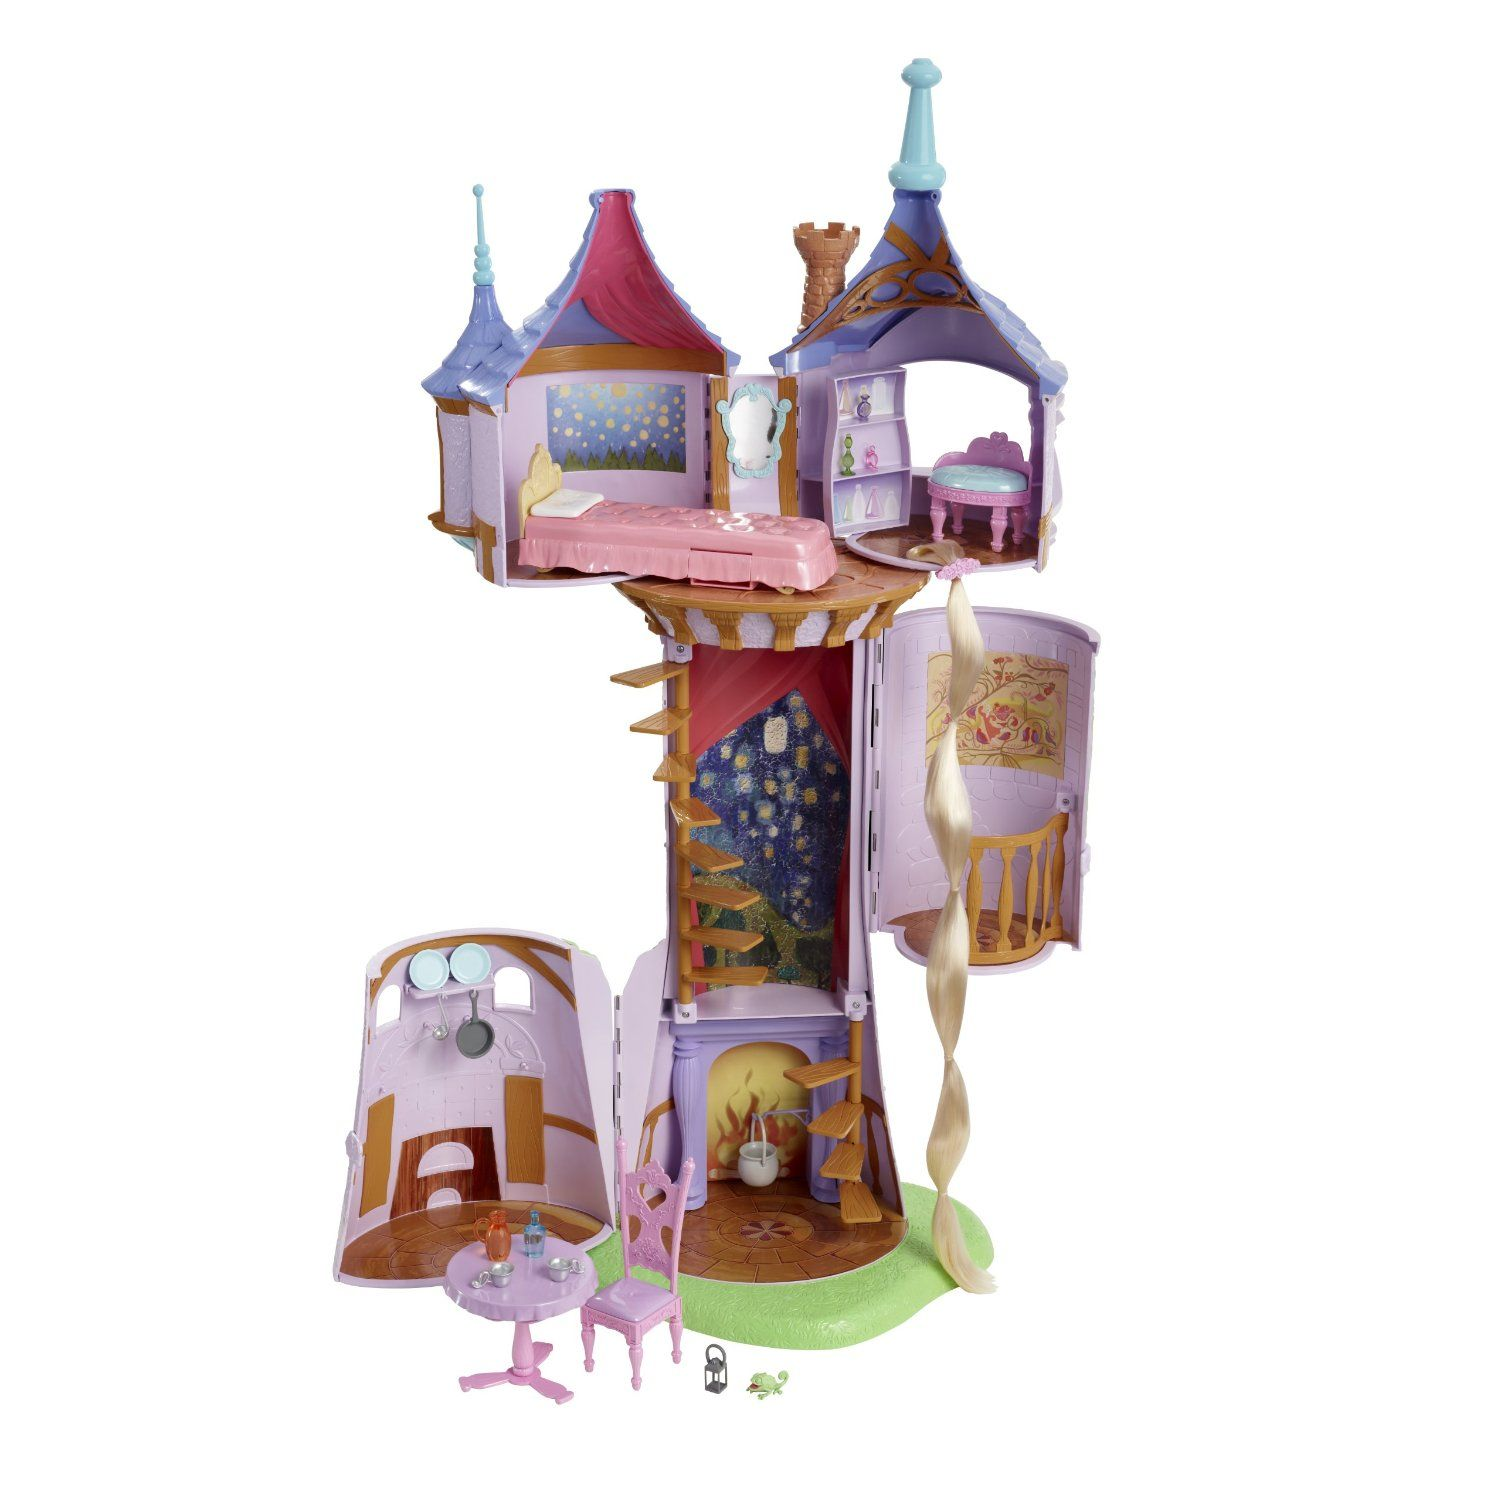 10 awesome barbie doll house models - Boxing